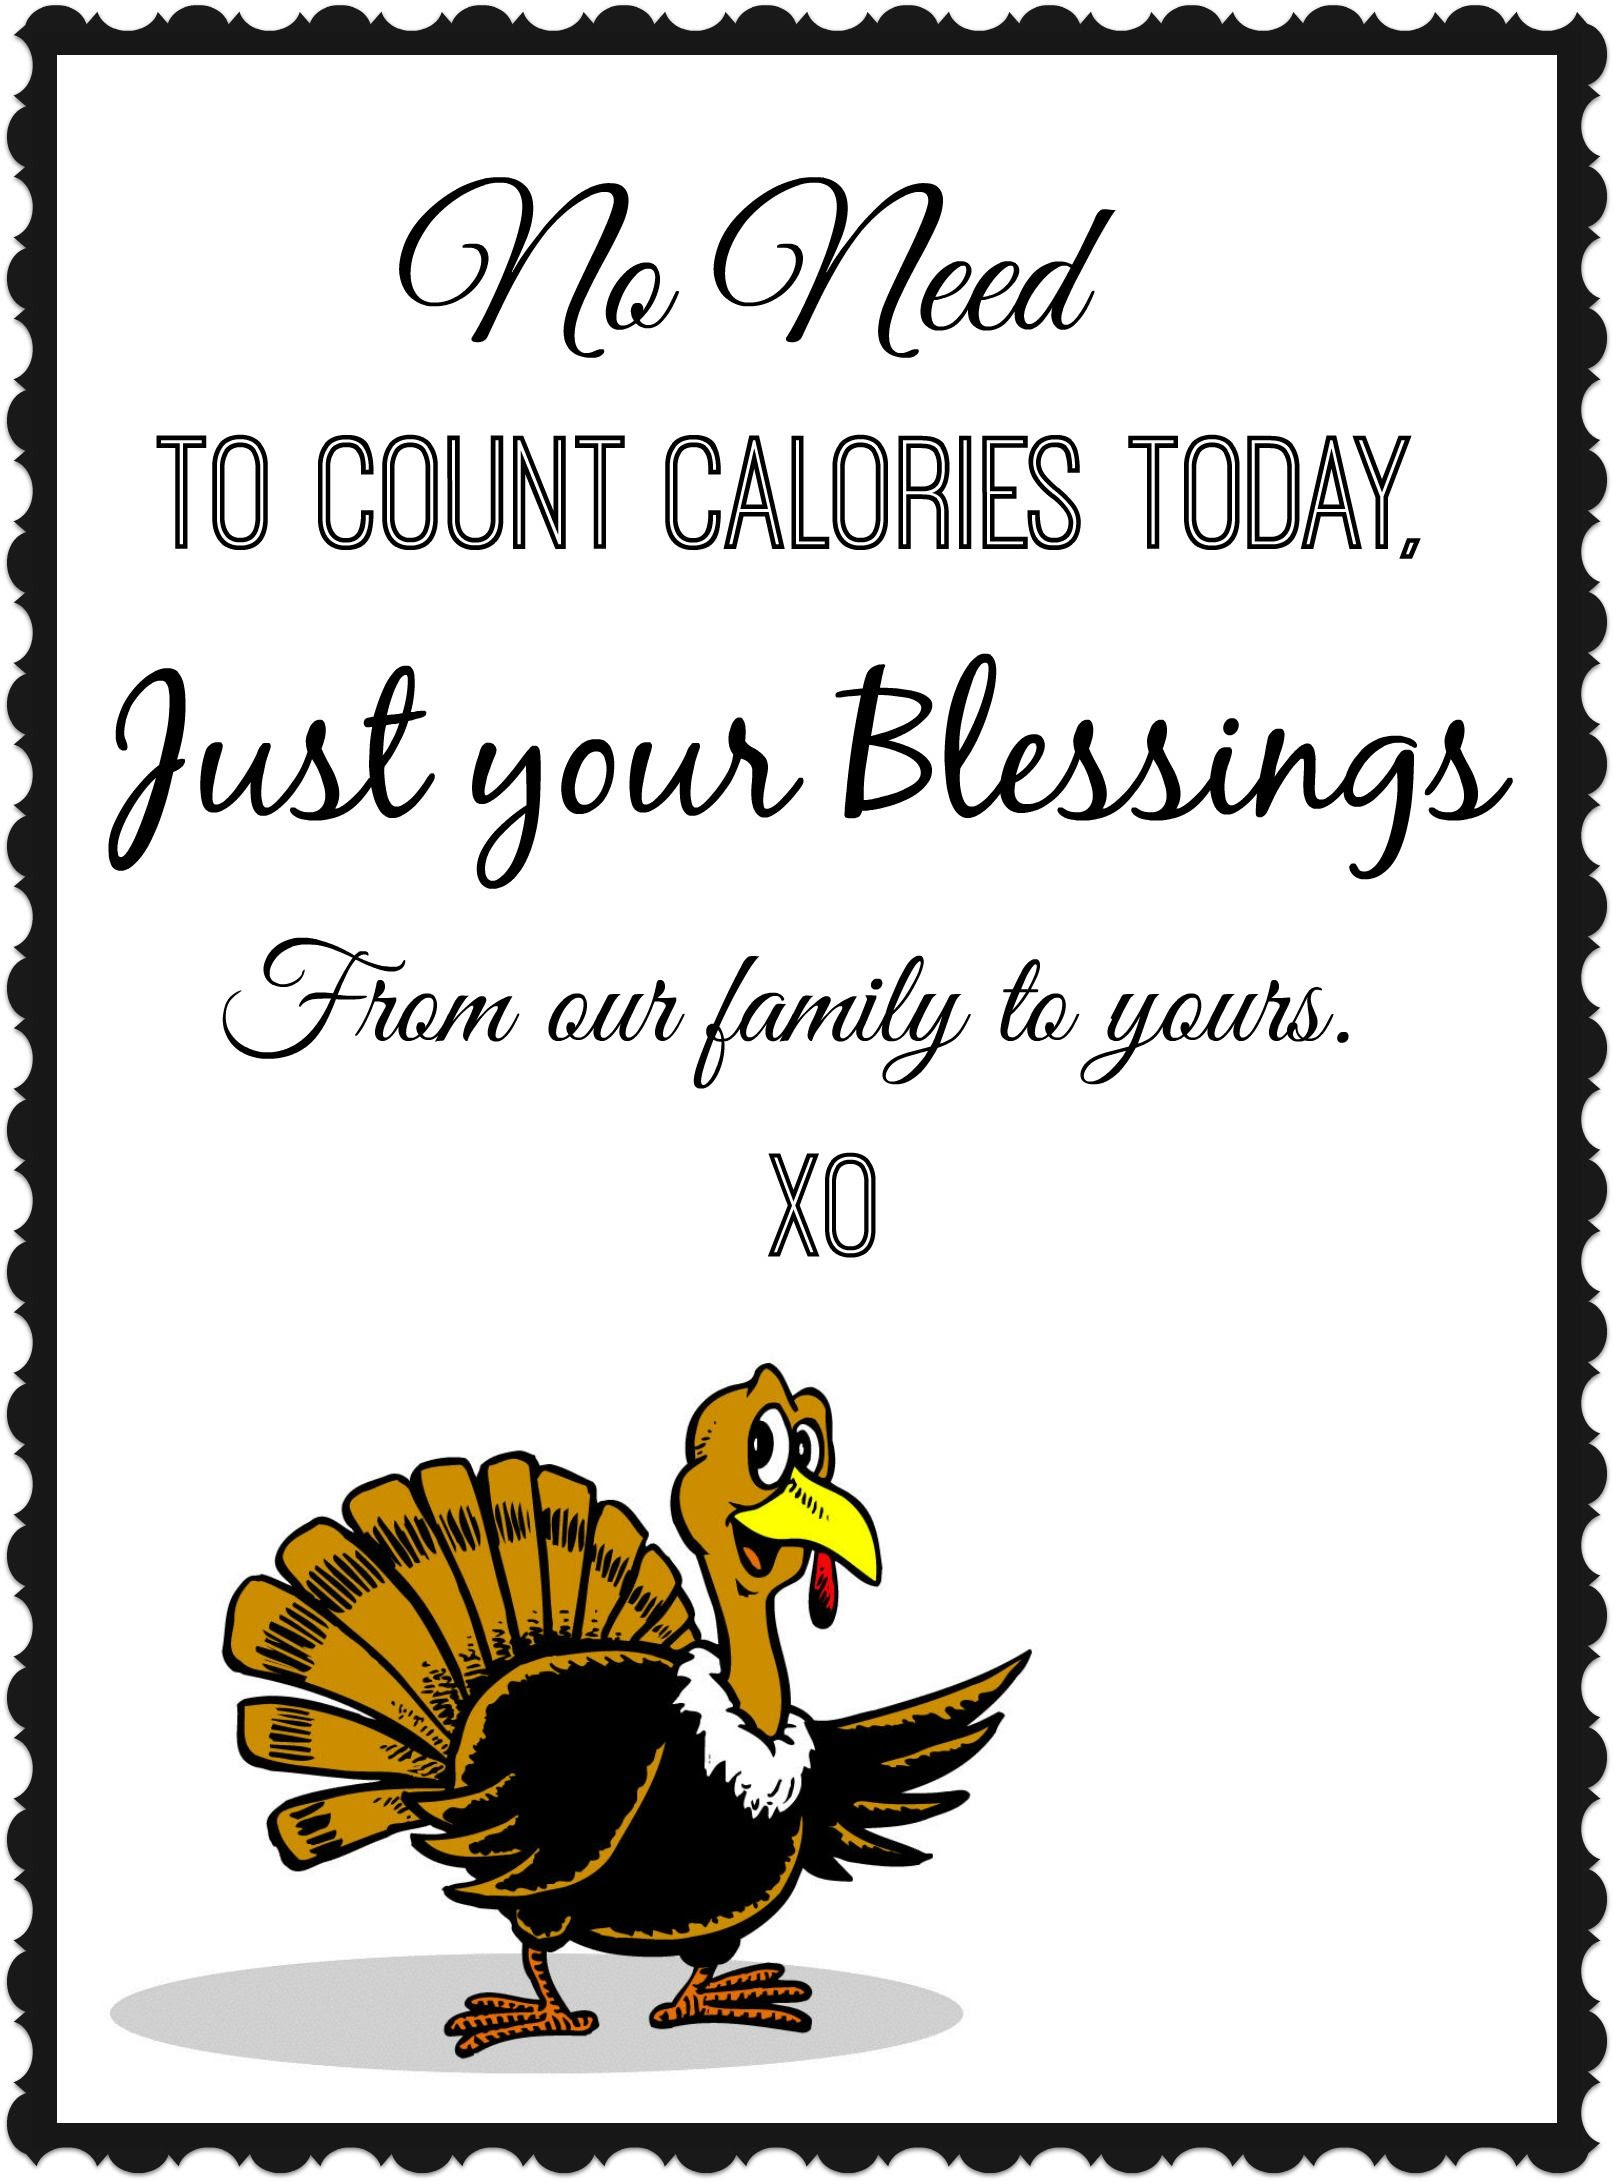 Count Your Blessings Pictures Photos And Images For Facebook